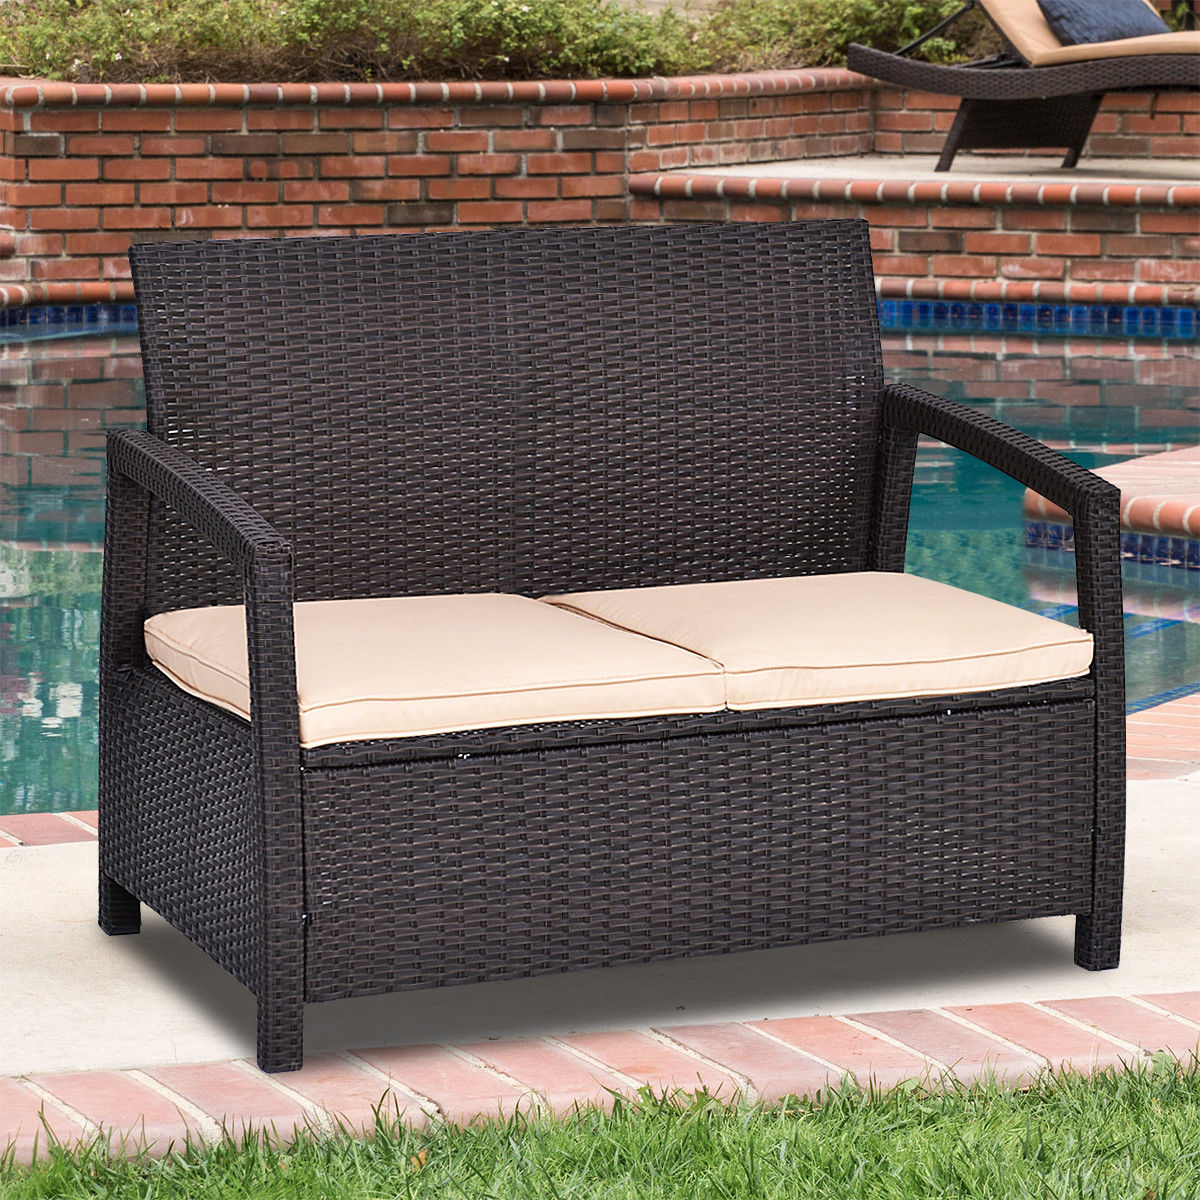 Costway Outdoor Rattan Loveseat Bench Couch Chair With Cushions Patio  Furniture Brown